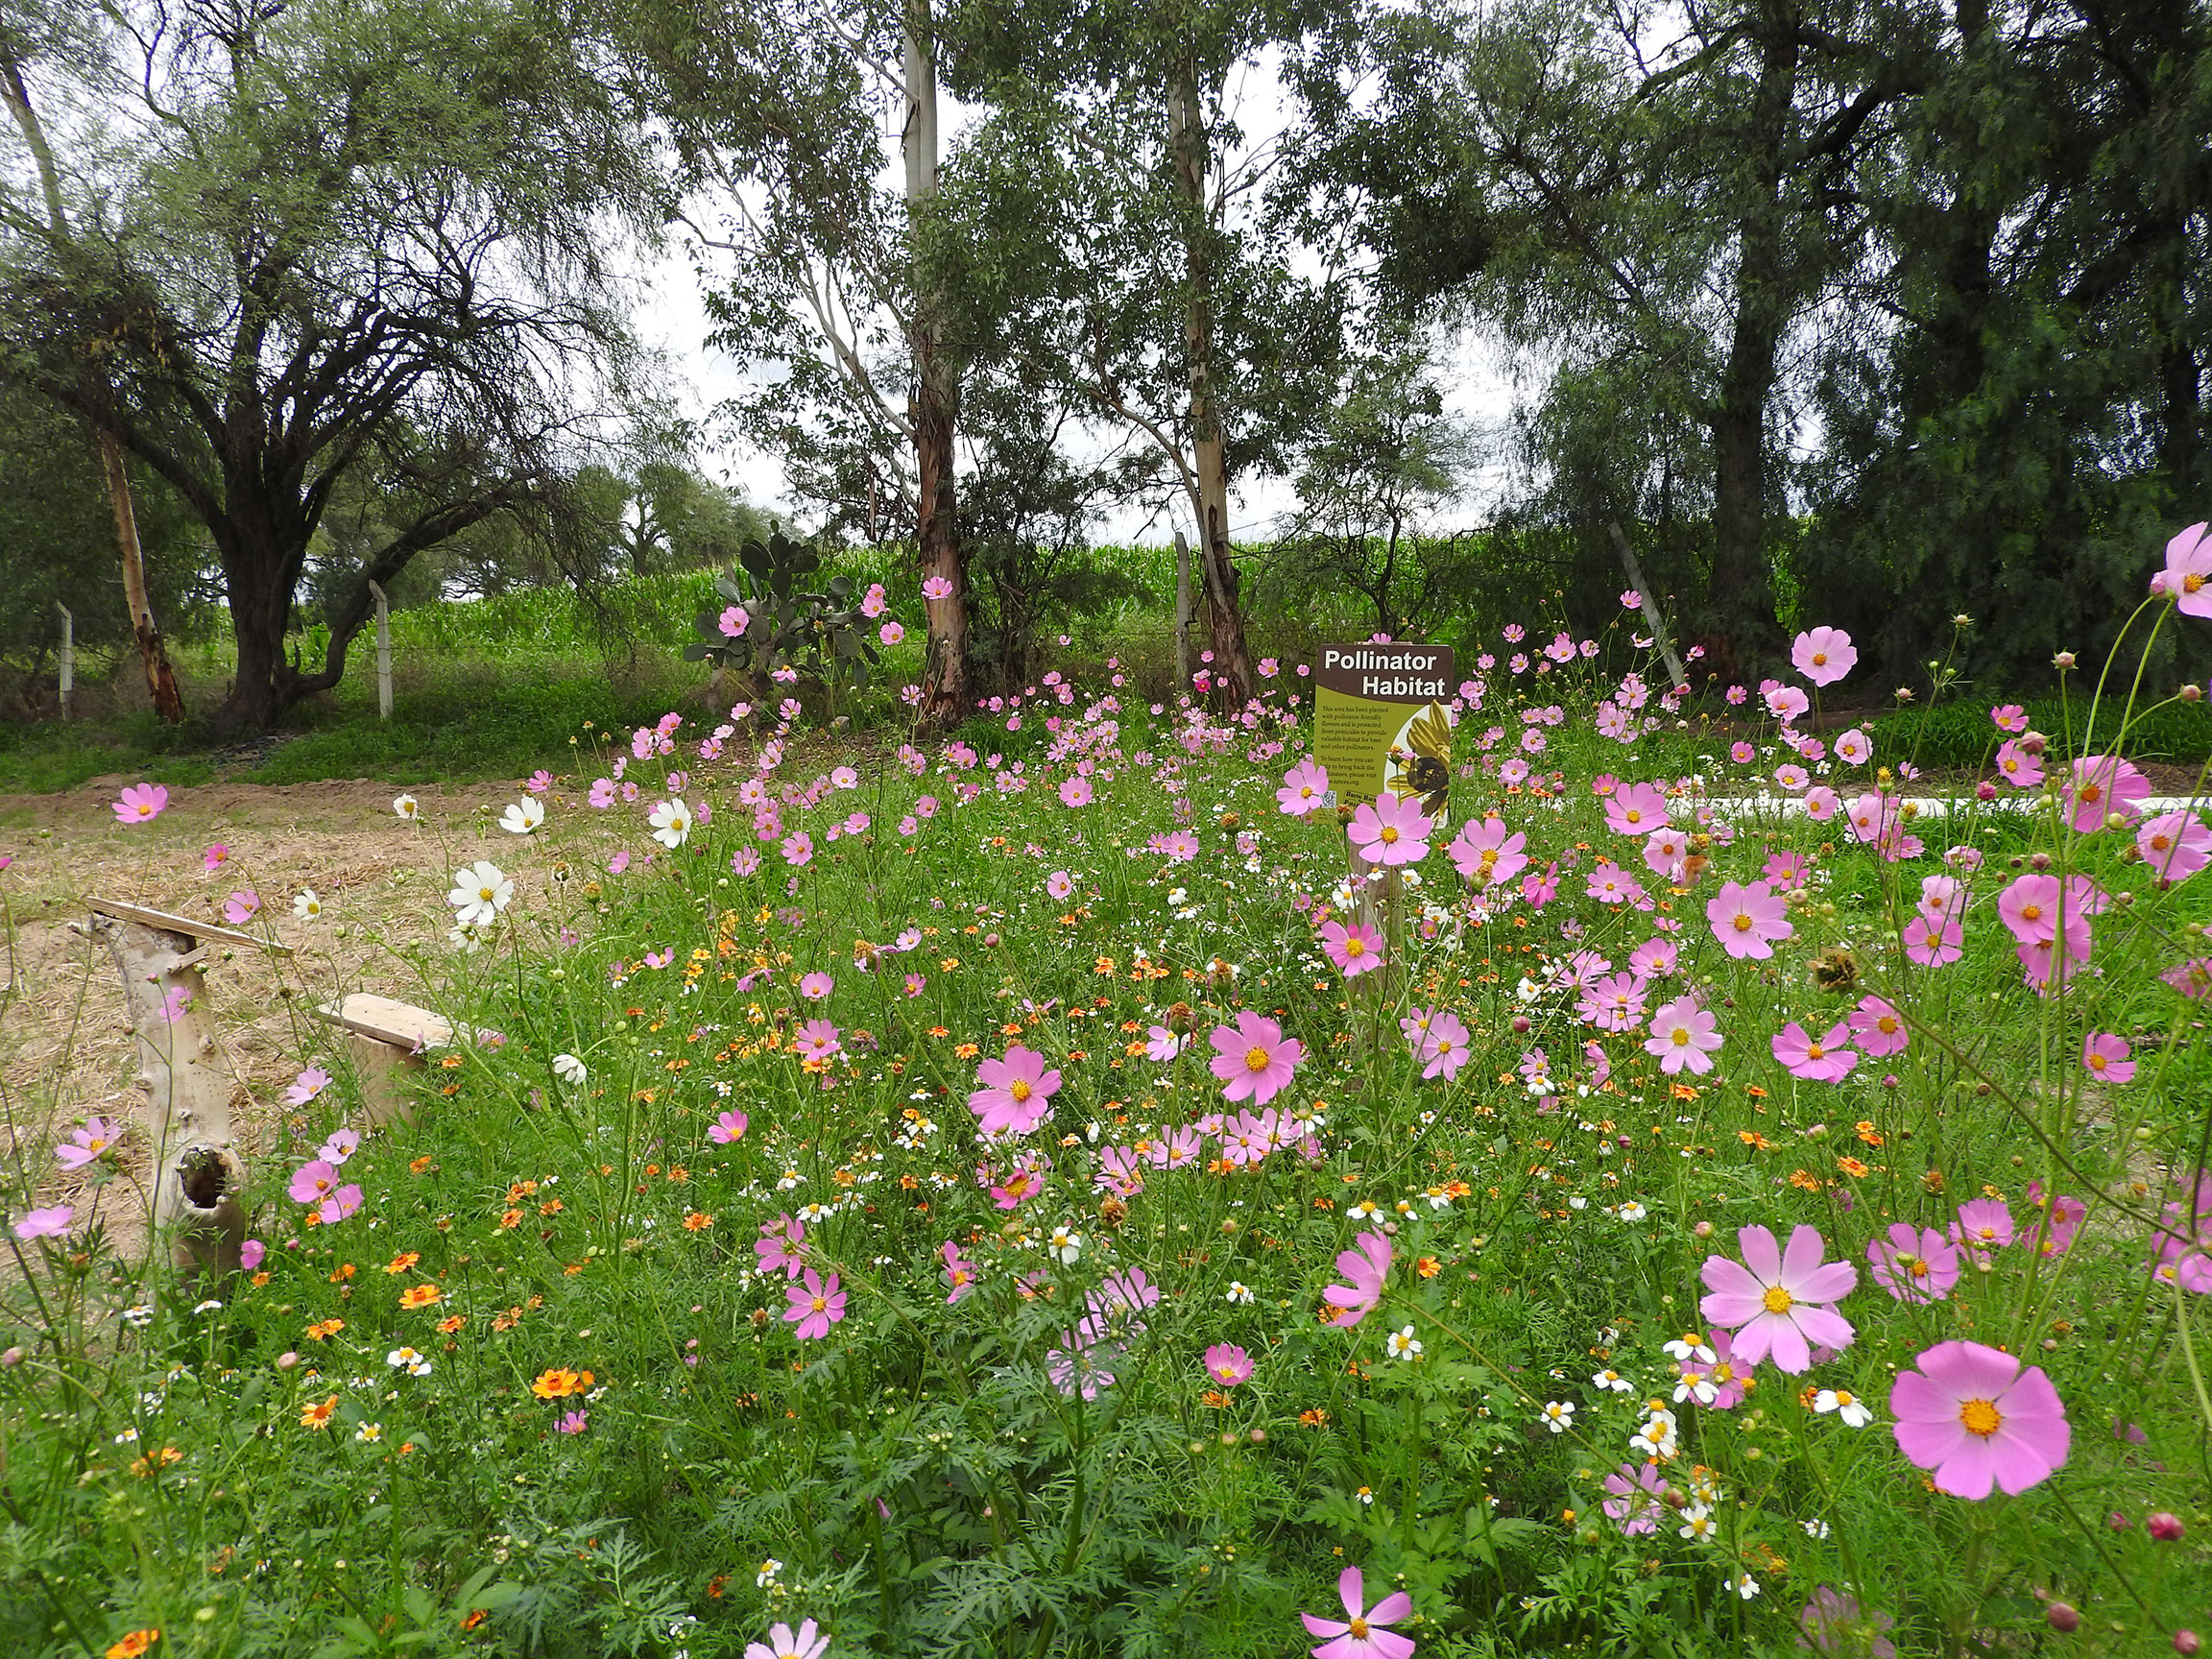 Now in full bloom, the pollinator habitat is covered in pink, white, and yellow flowers.